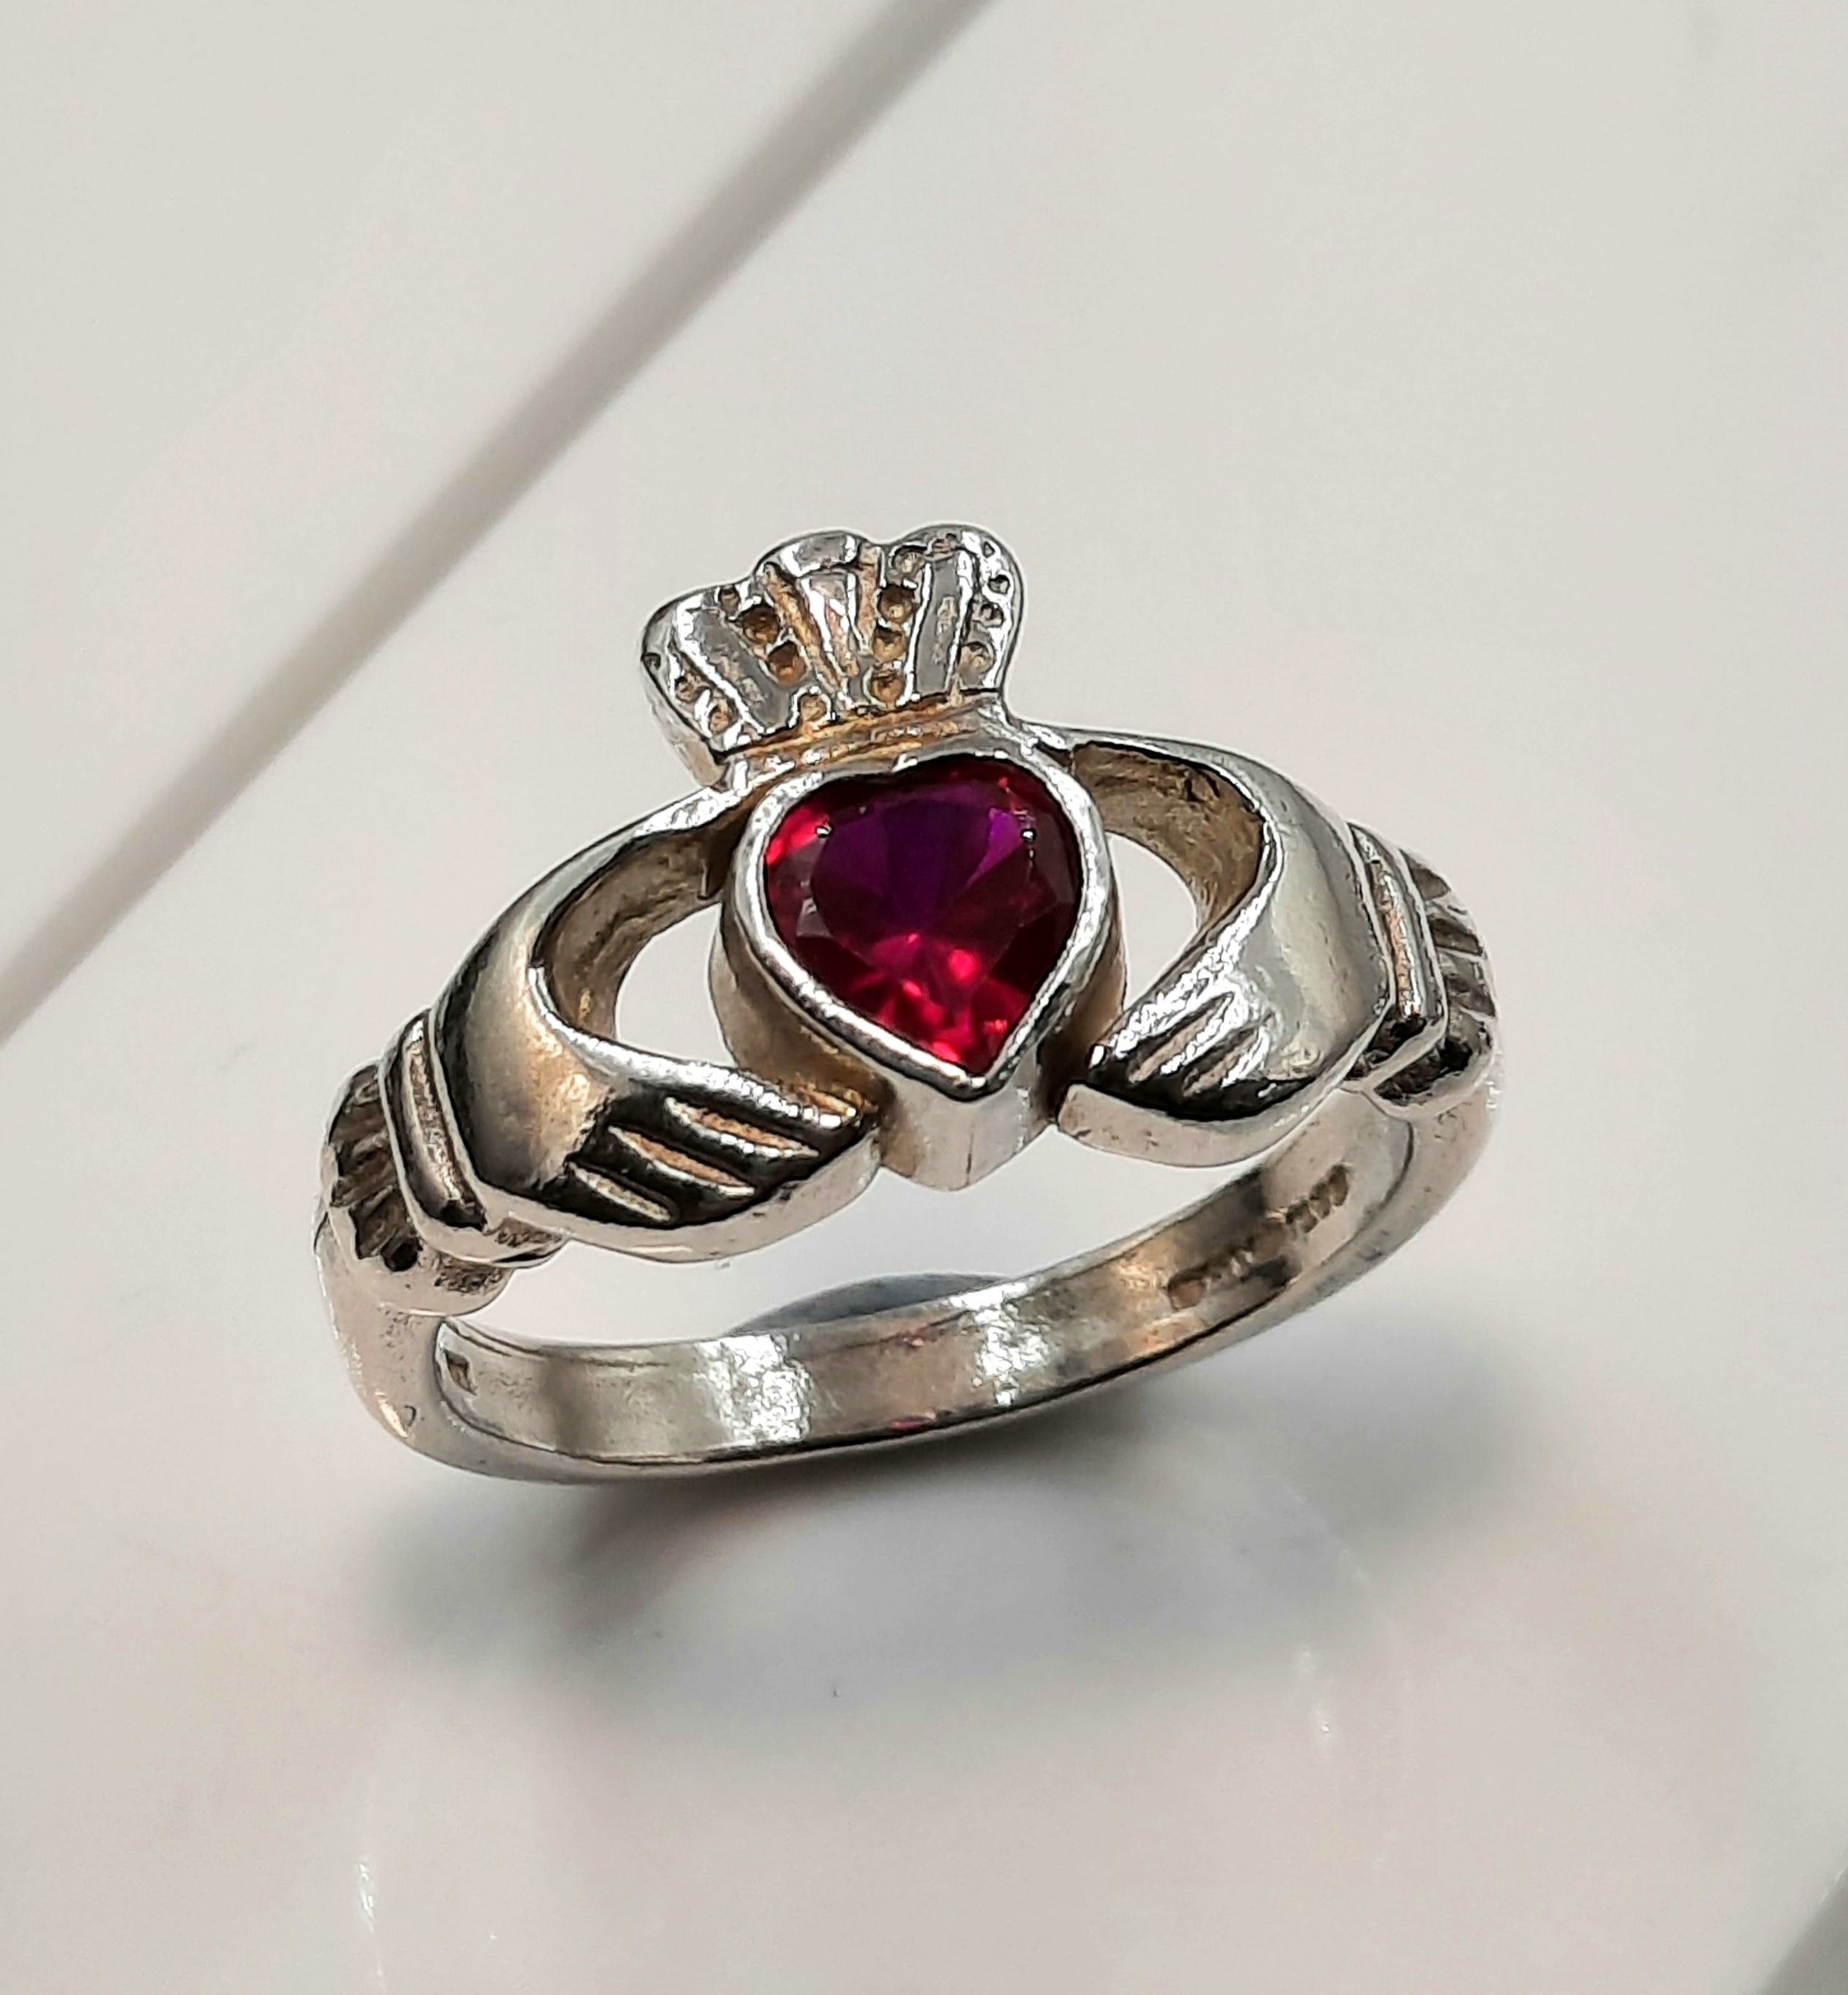 Ladies claddagh sterling silver ring with red stone